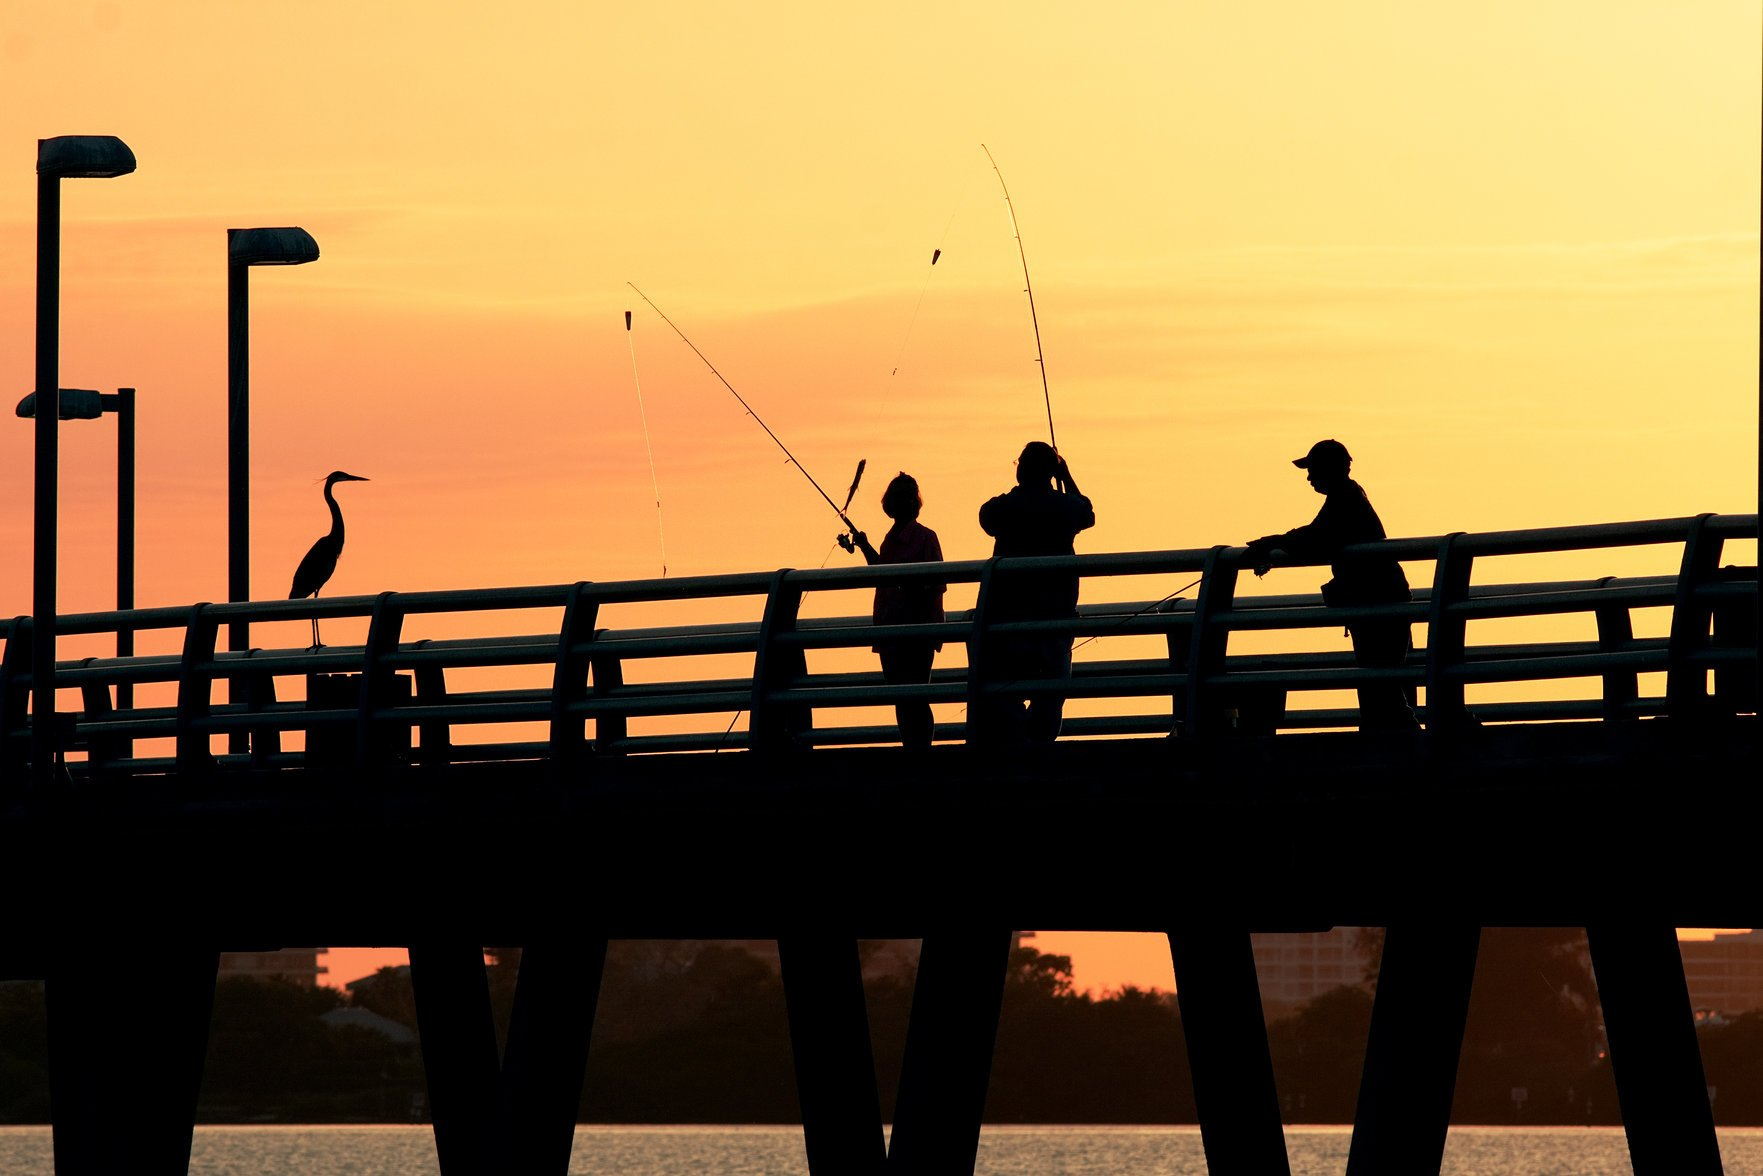 three anglers pier fishing at sunset